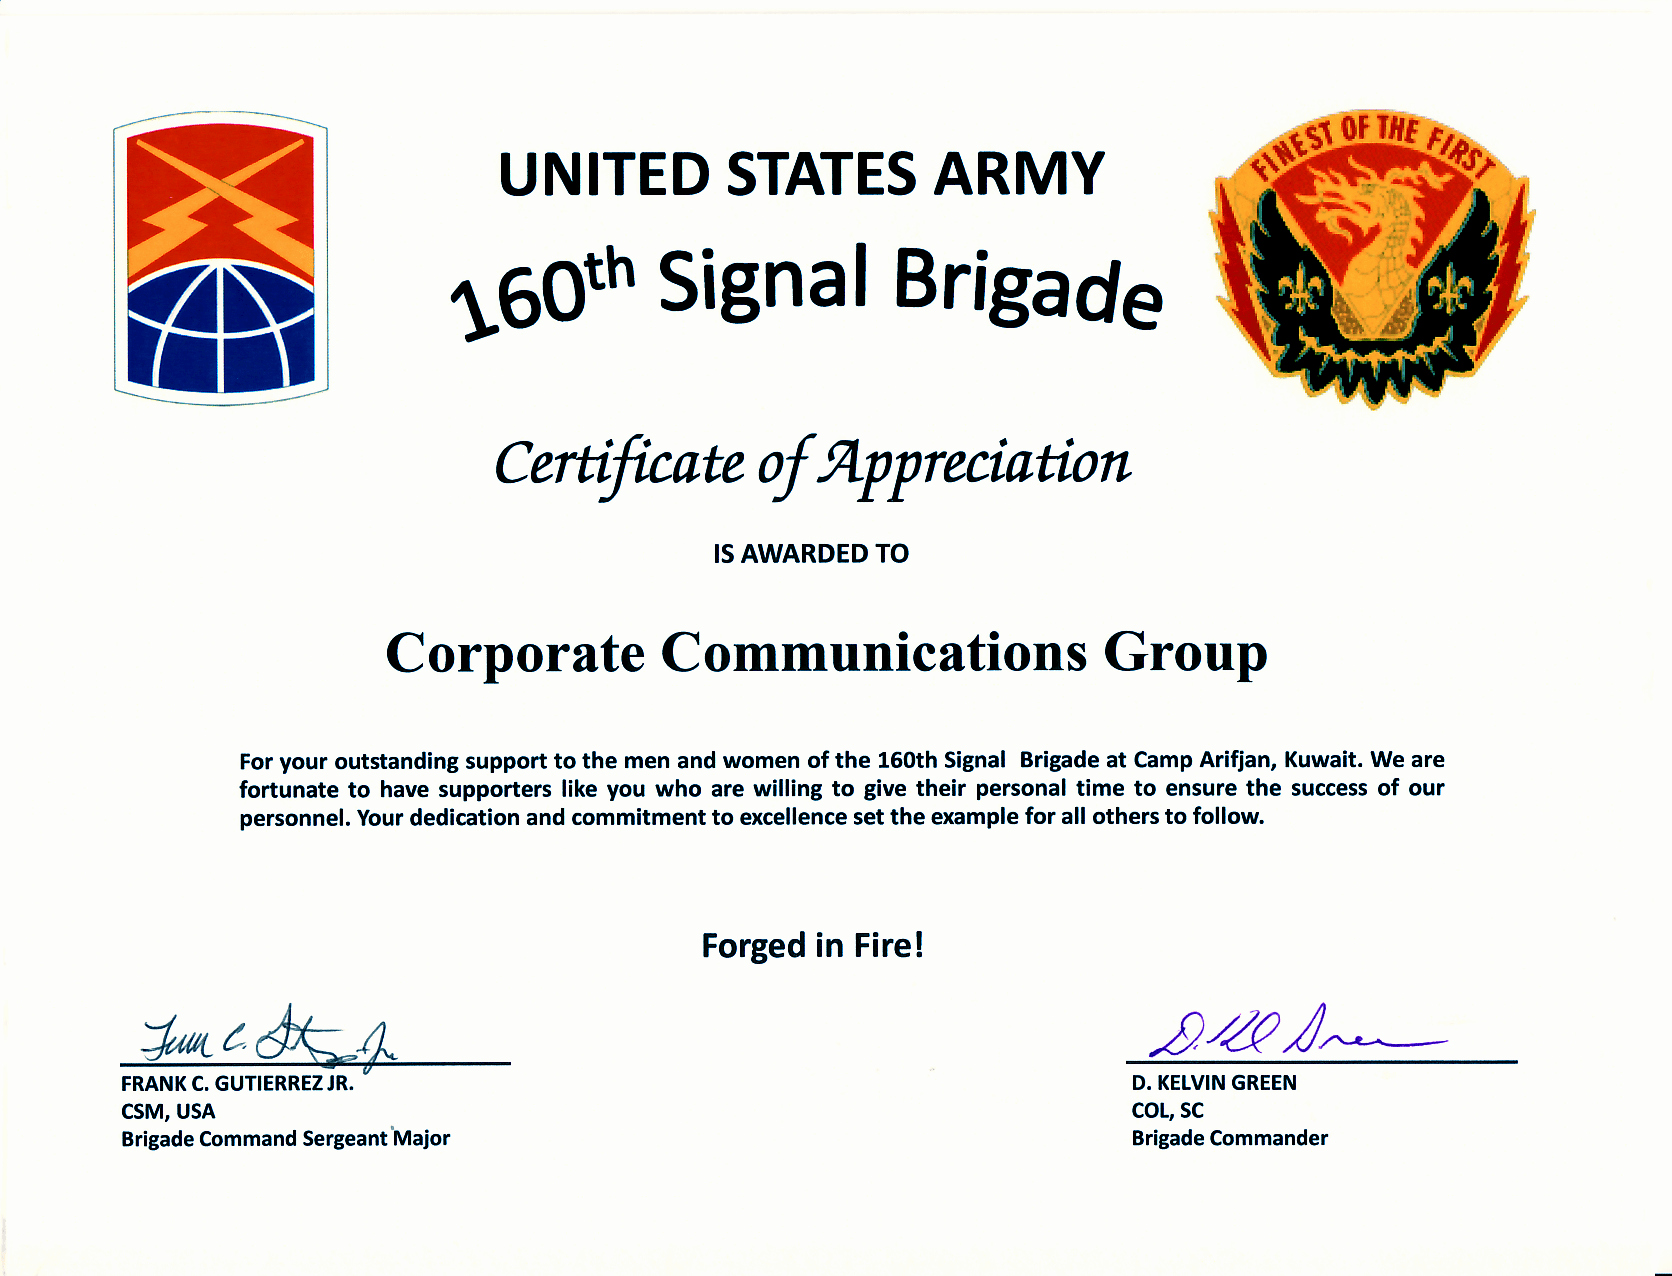 Army Promotion Certificate Template Inspirational Army Certificate Appreciation Bamboodownunder